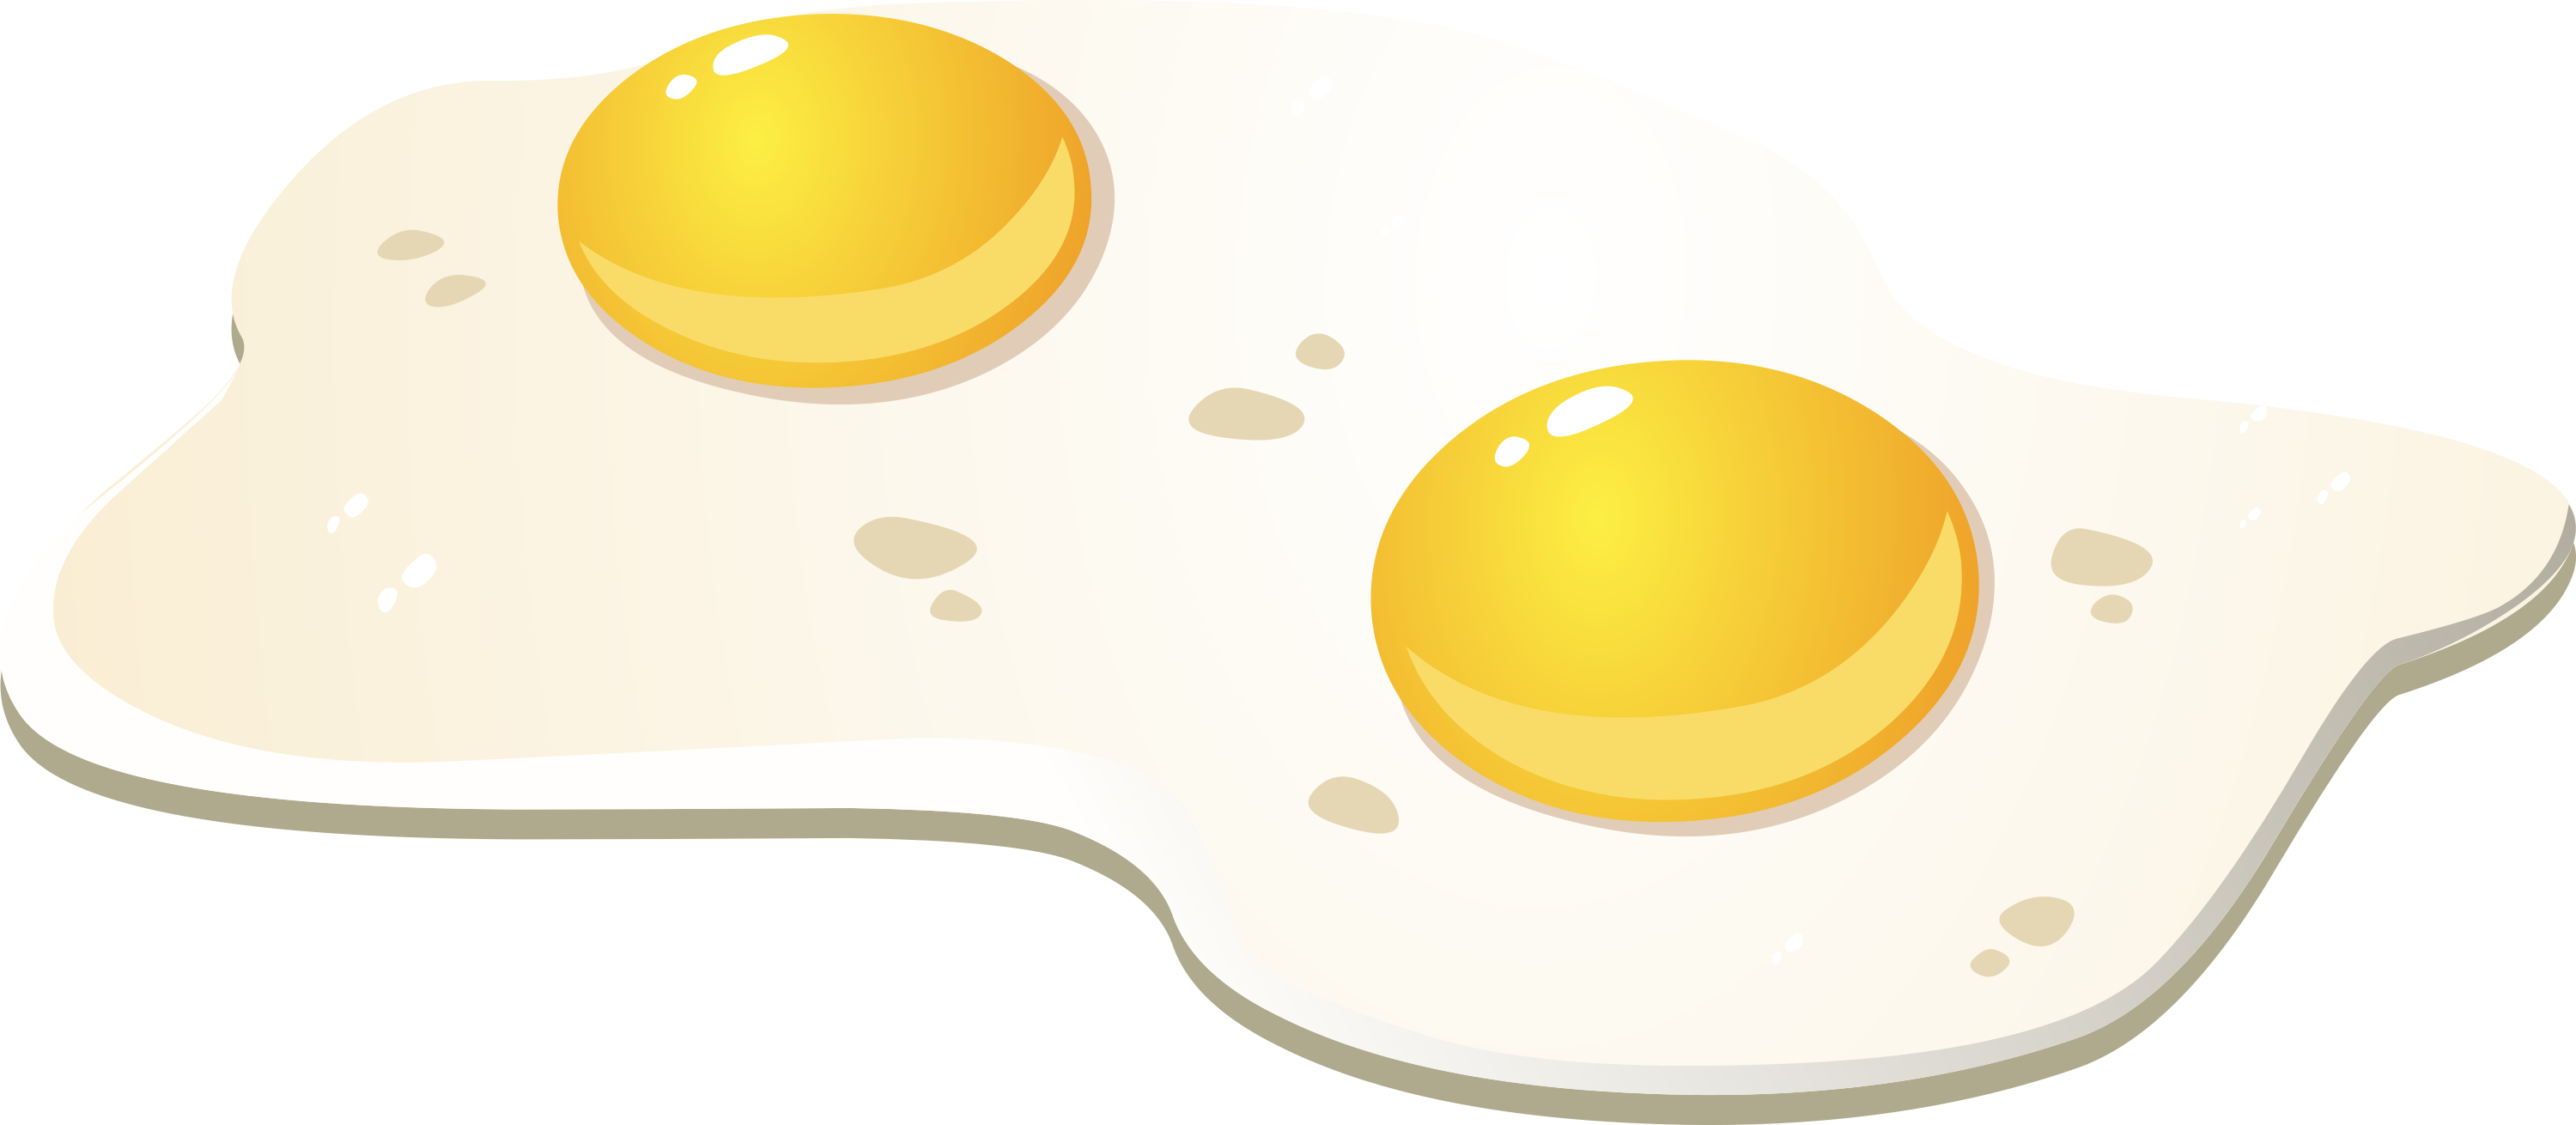 Two eggs png. Fried egg isolated stock